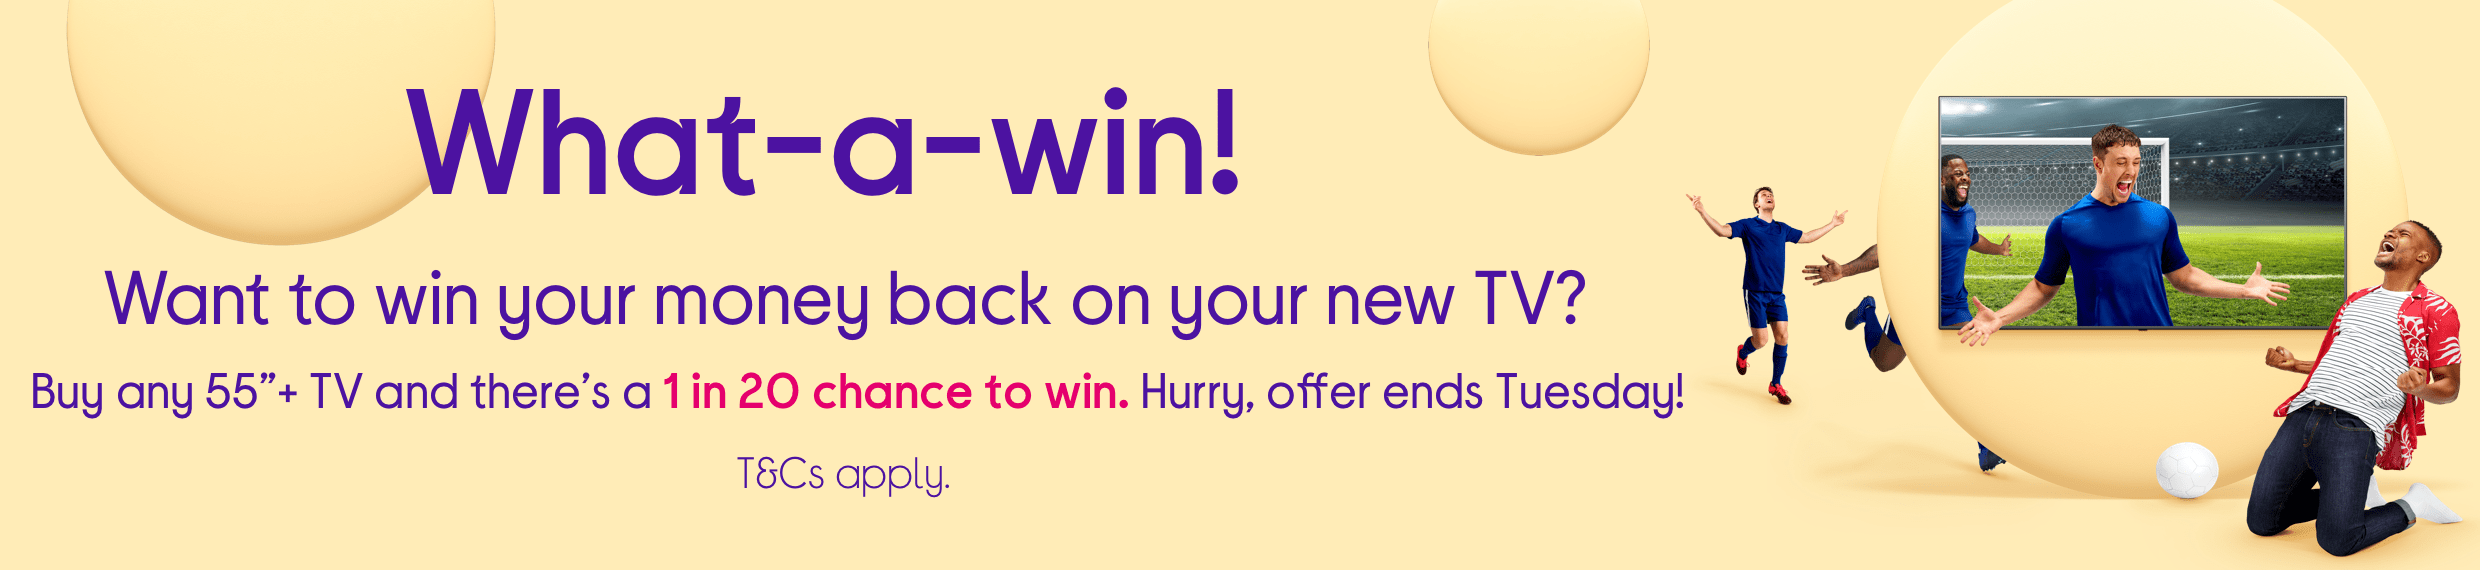 "Buy any 55""+ TV and there's a 1-in-20 chance to win your money back."